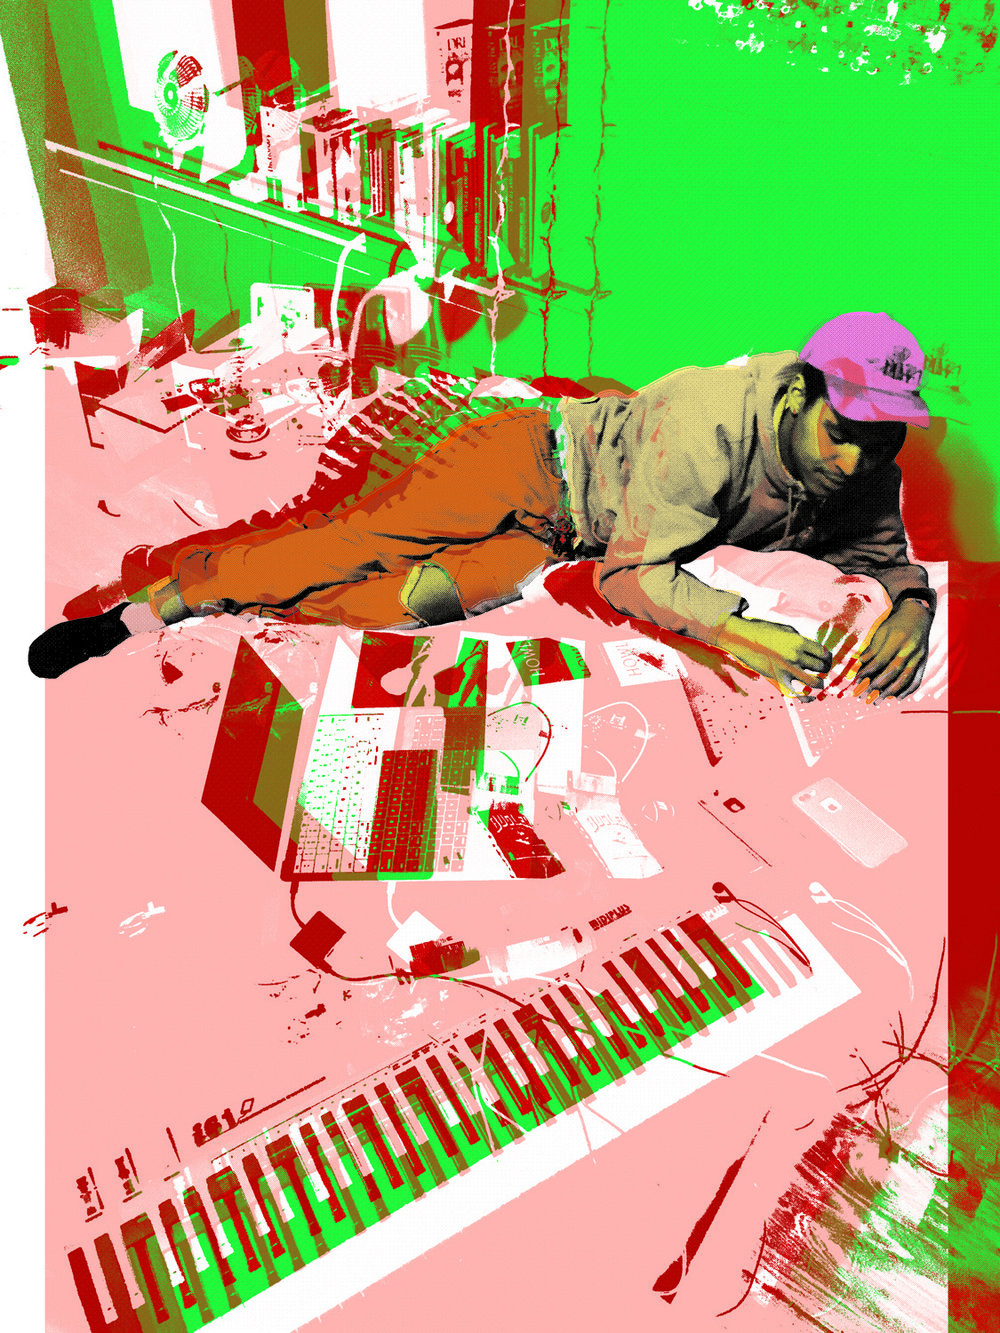 Chuck with Piano Red and Green